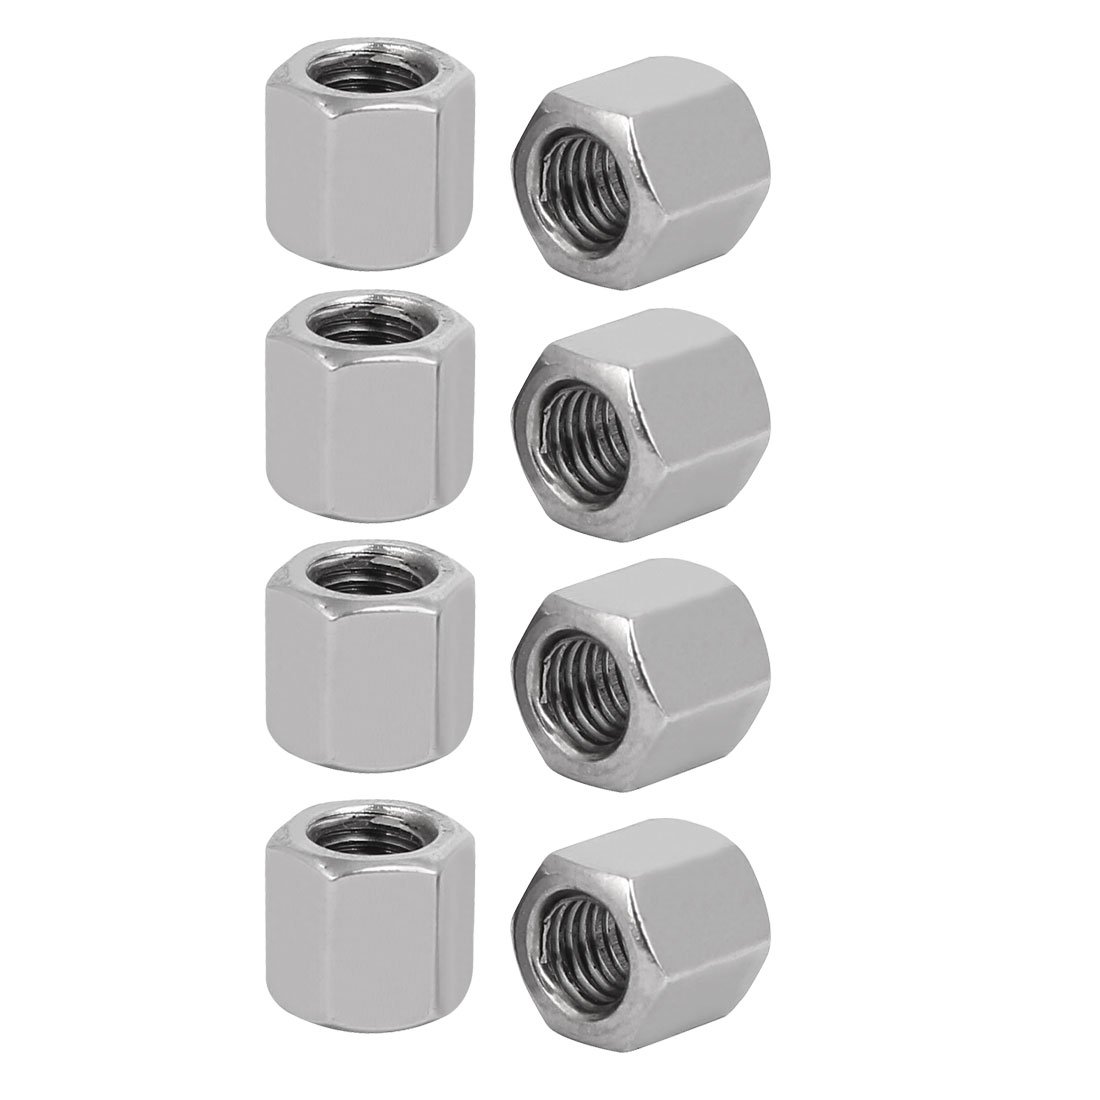 M5x8mmx8mm Female Thread Straight Hex Rod Coupling Connector Nuts 8pcs - image 1 of 1